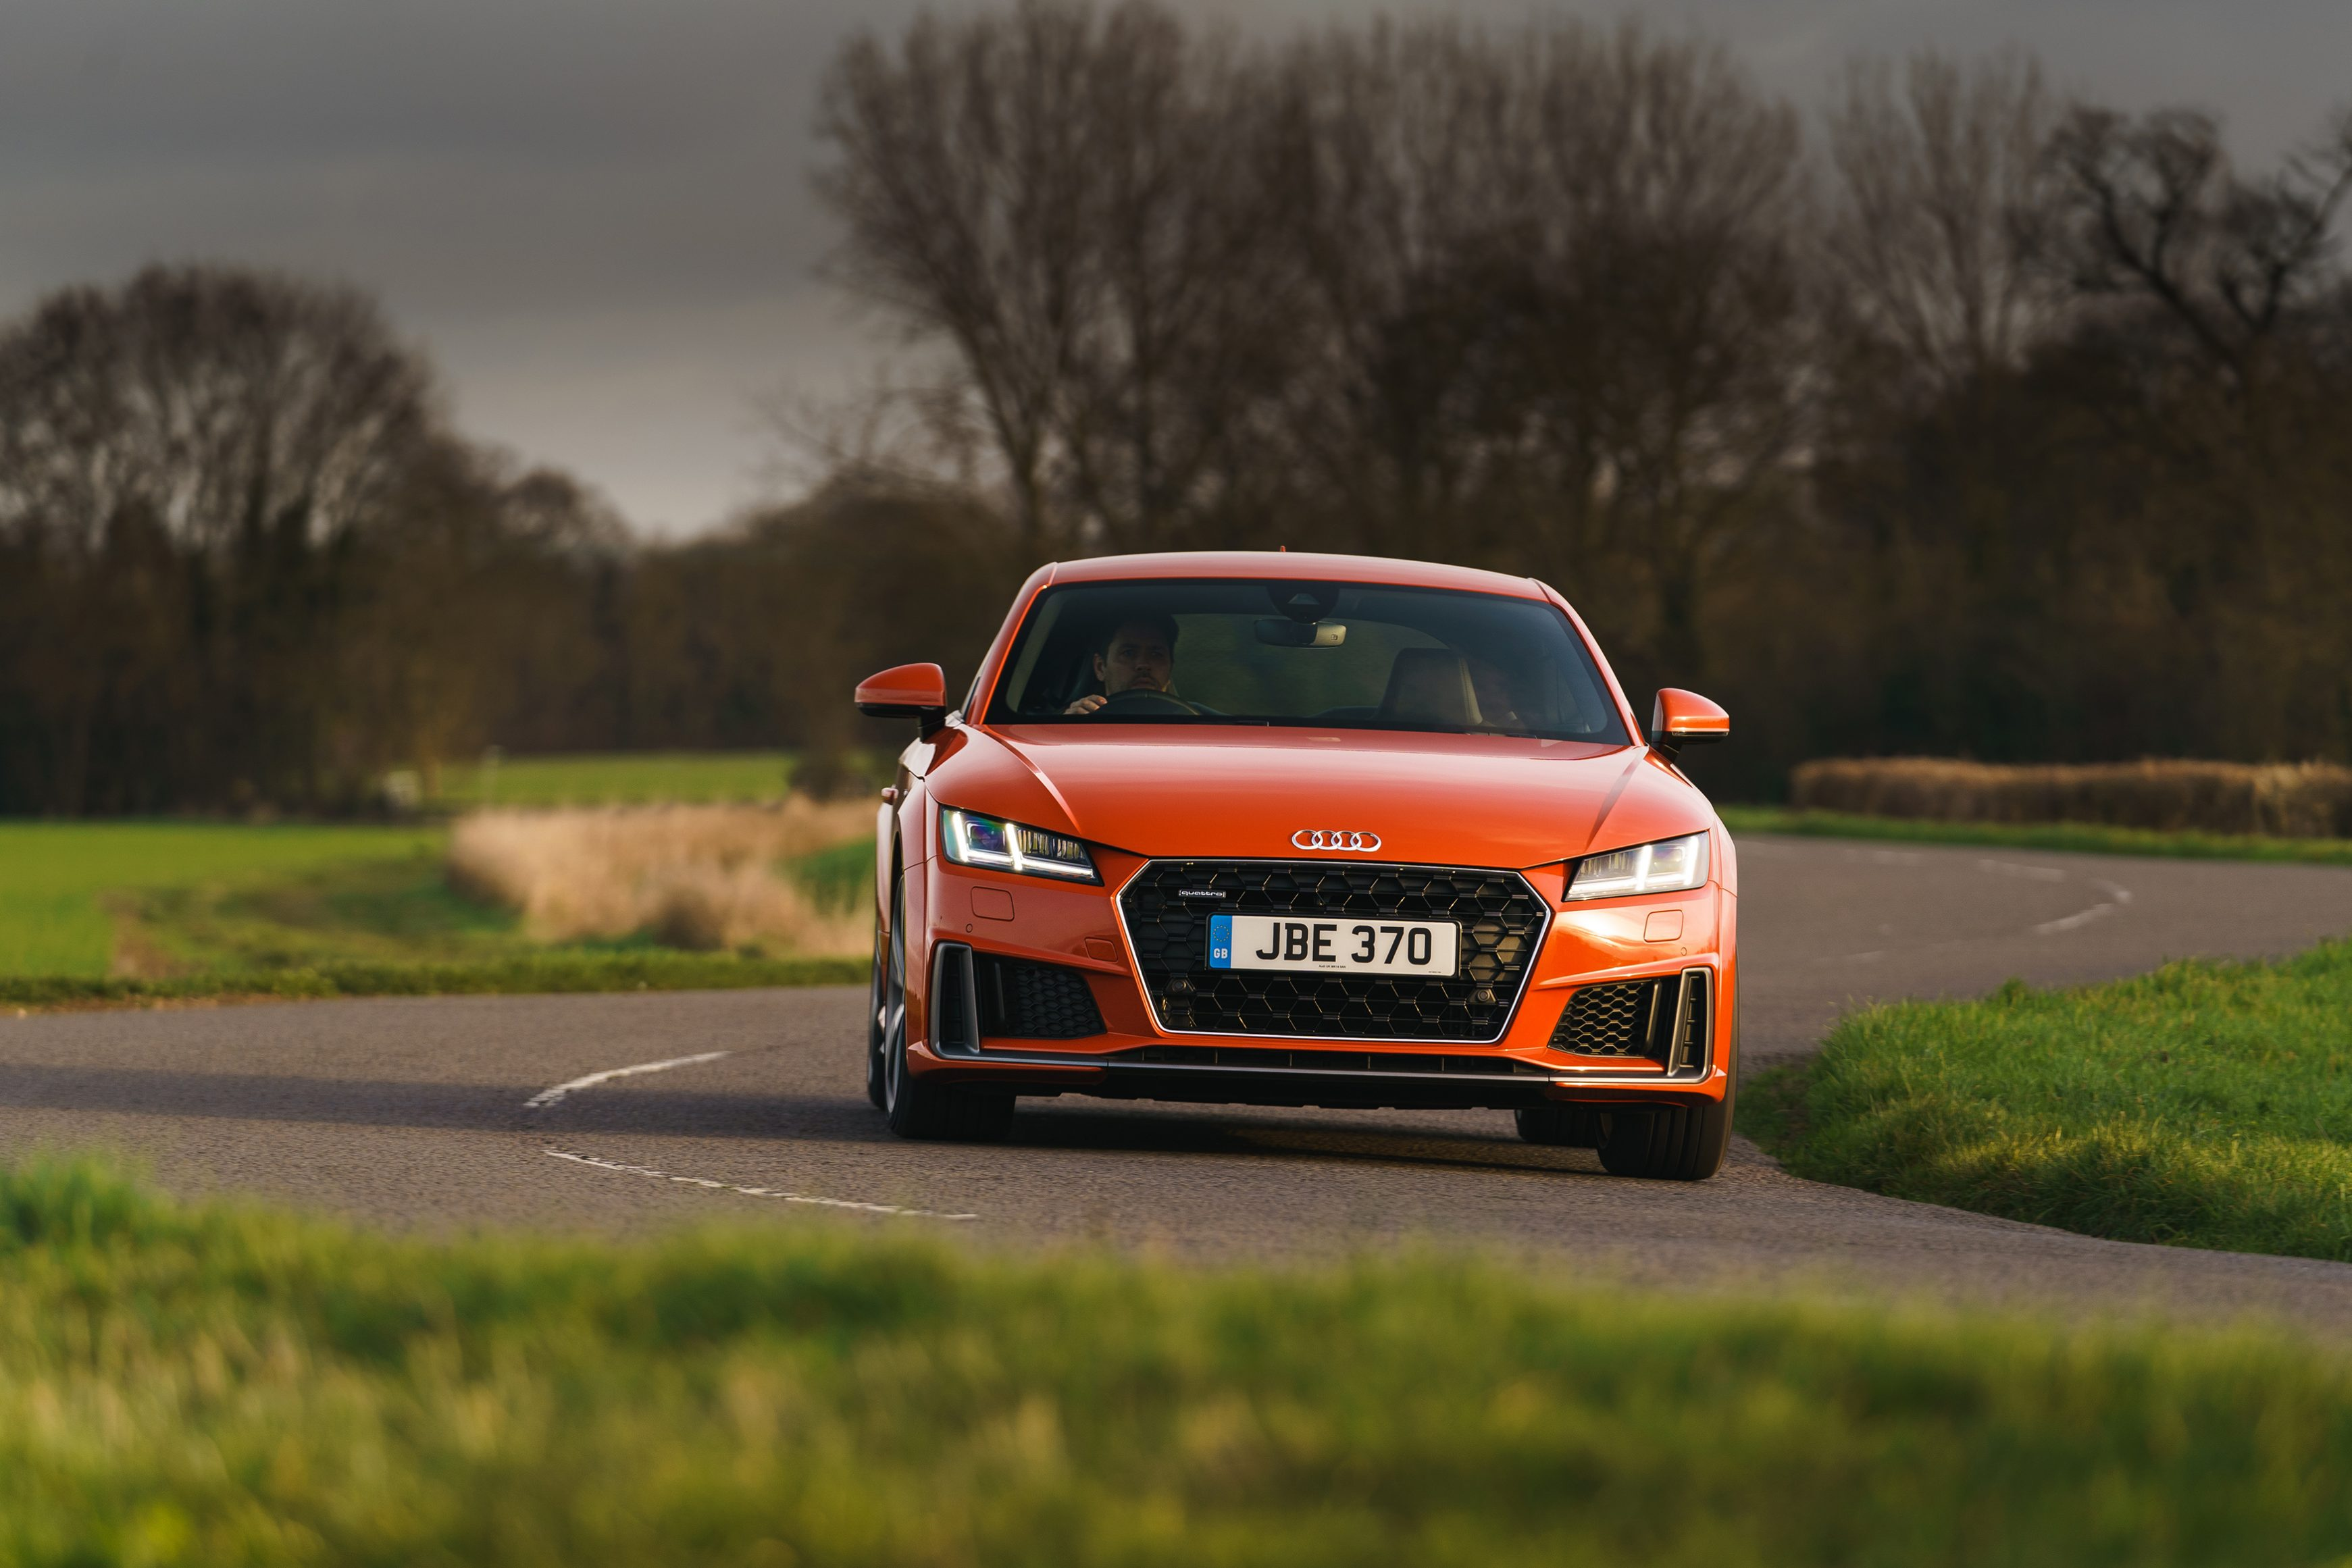 Best affordable sports cars in 2021 - Audi TT